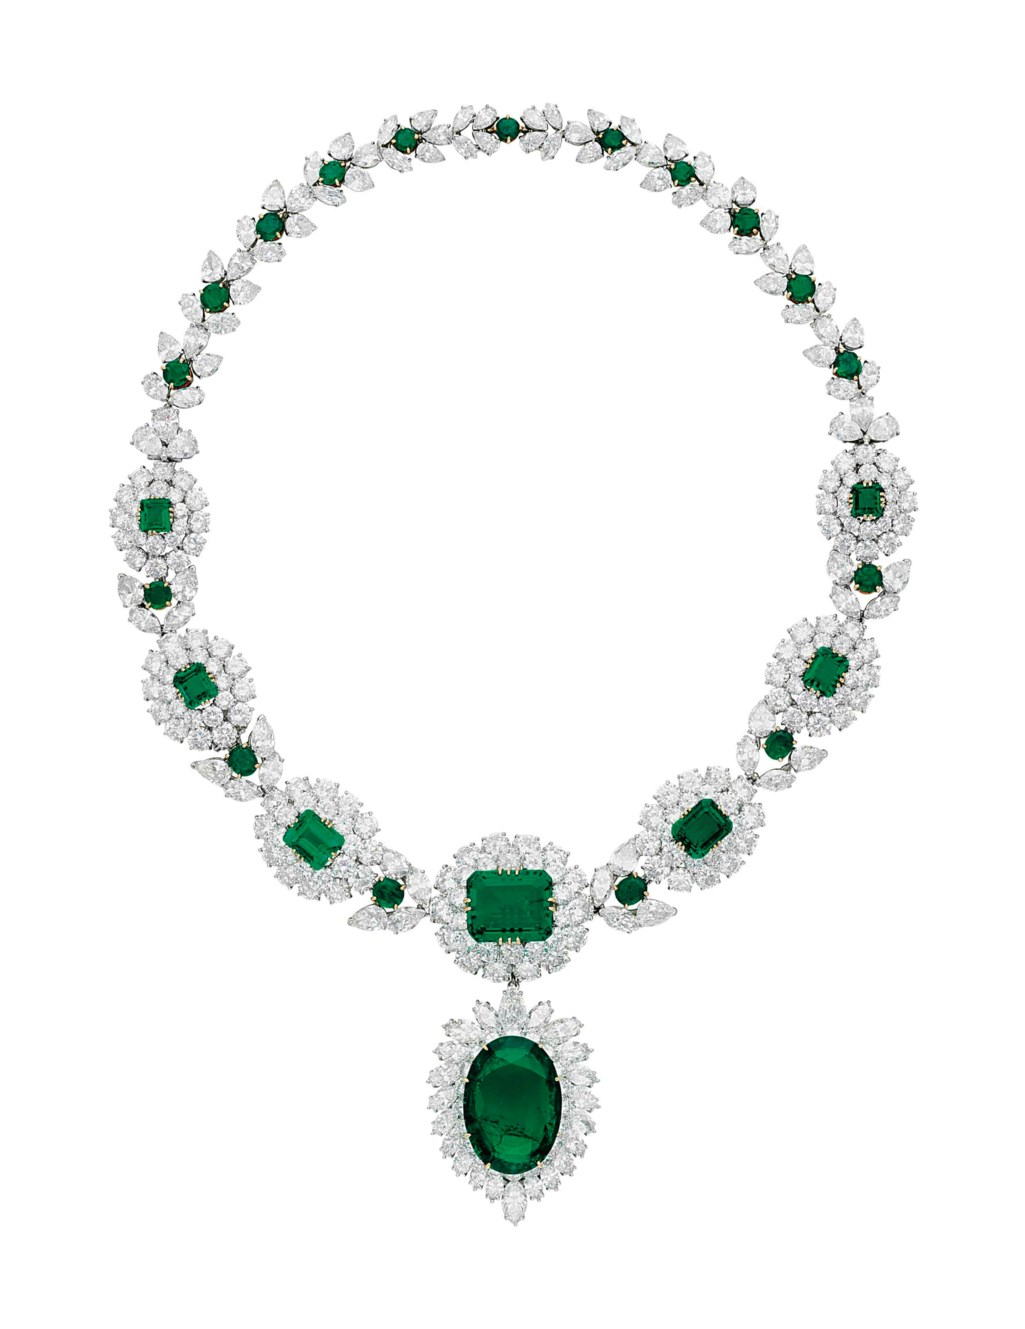 AN IMPRESSIVE EMERALD AND DIAMOND NECKLACE, BY VAN CLEEF & ARPELS